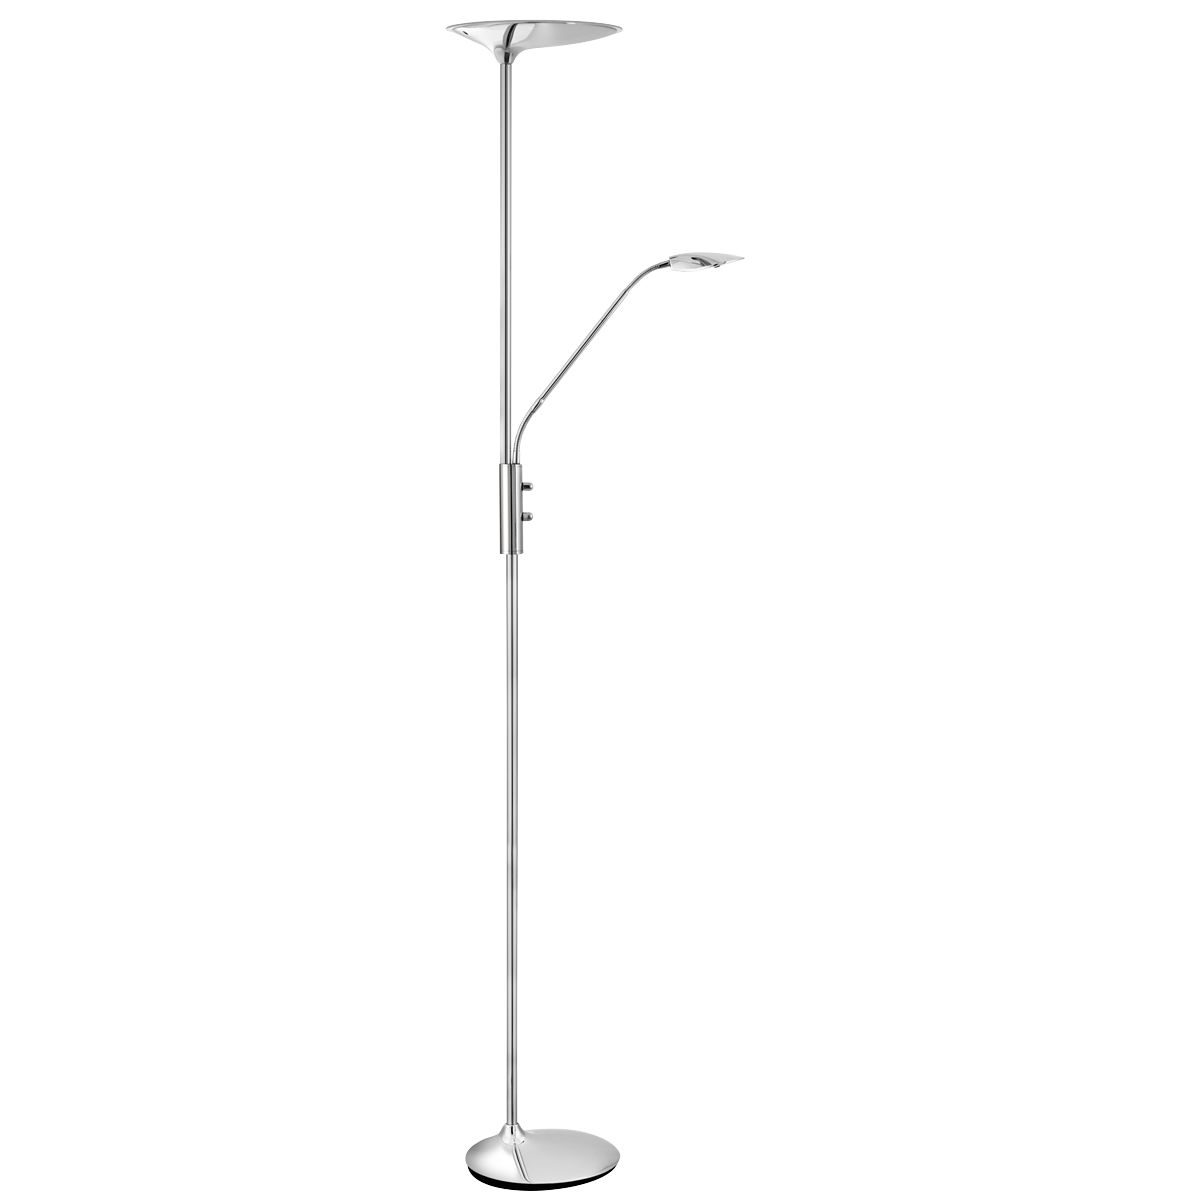 Chrome Led Mother And Child Floor Lamp, Double Dimmer Switch